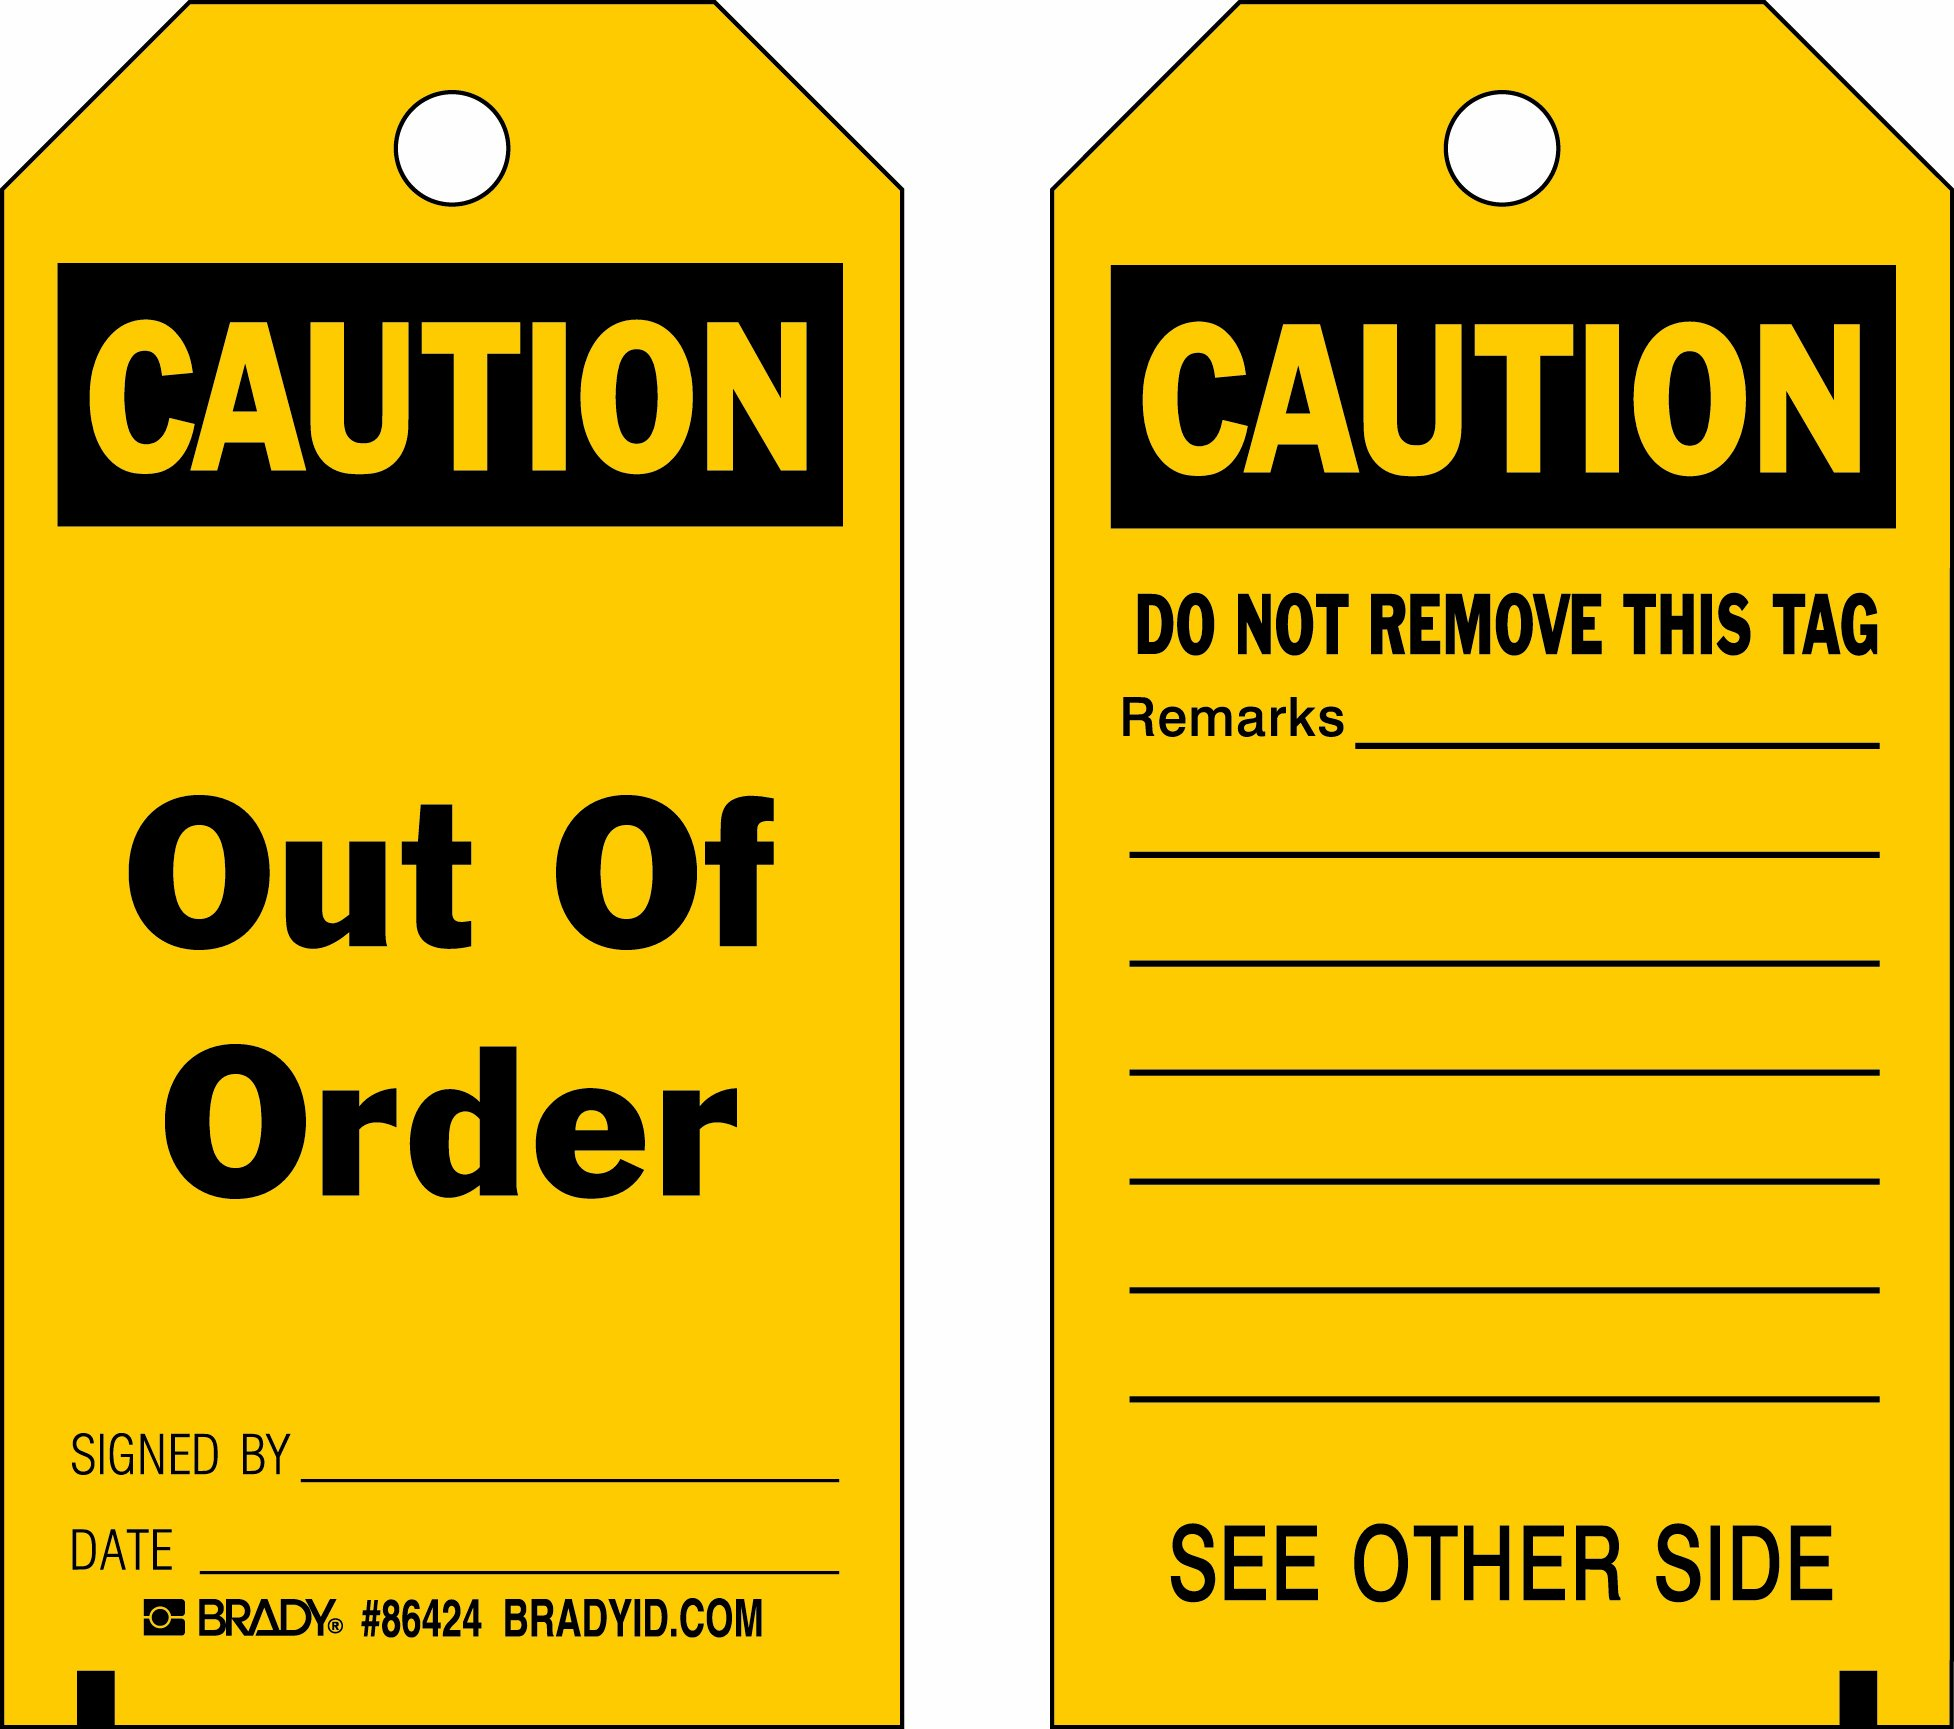 Brady 86424 5 3/4'' Height x 3'' Width, Heavy Duty Polyester (B-837), Black on Yellow Accident Prevention Tags (10 Tags) by Brady